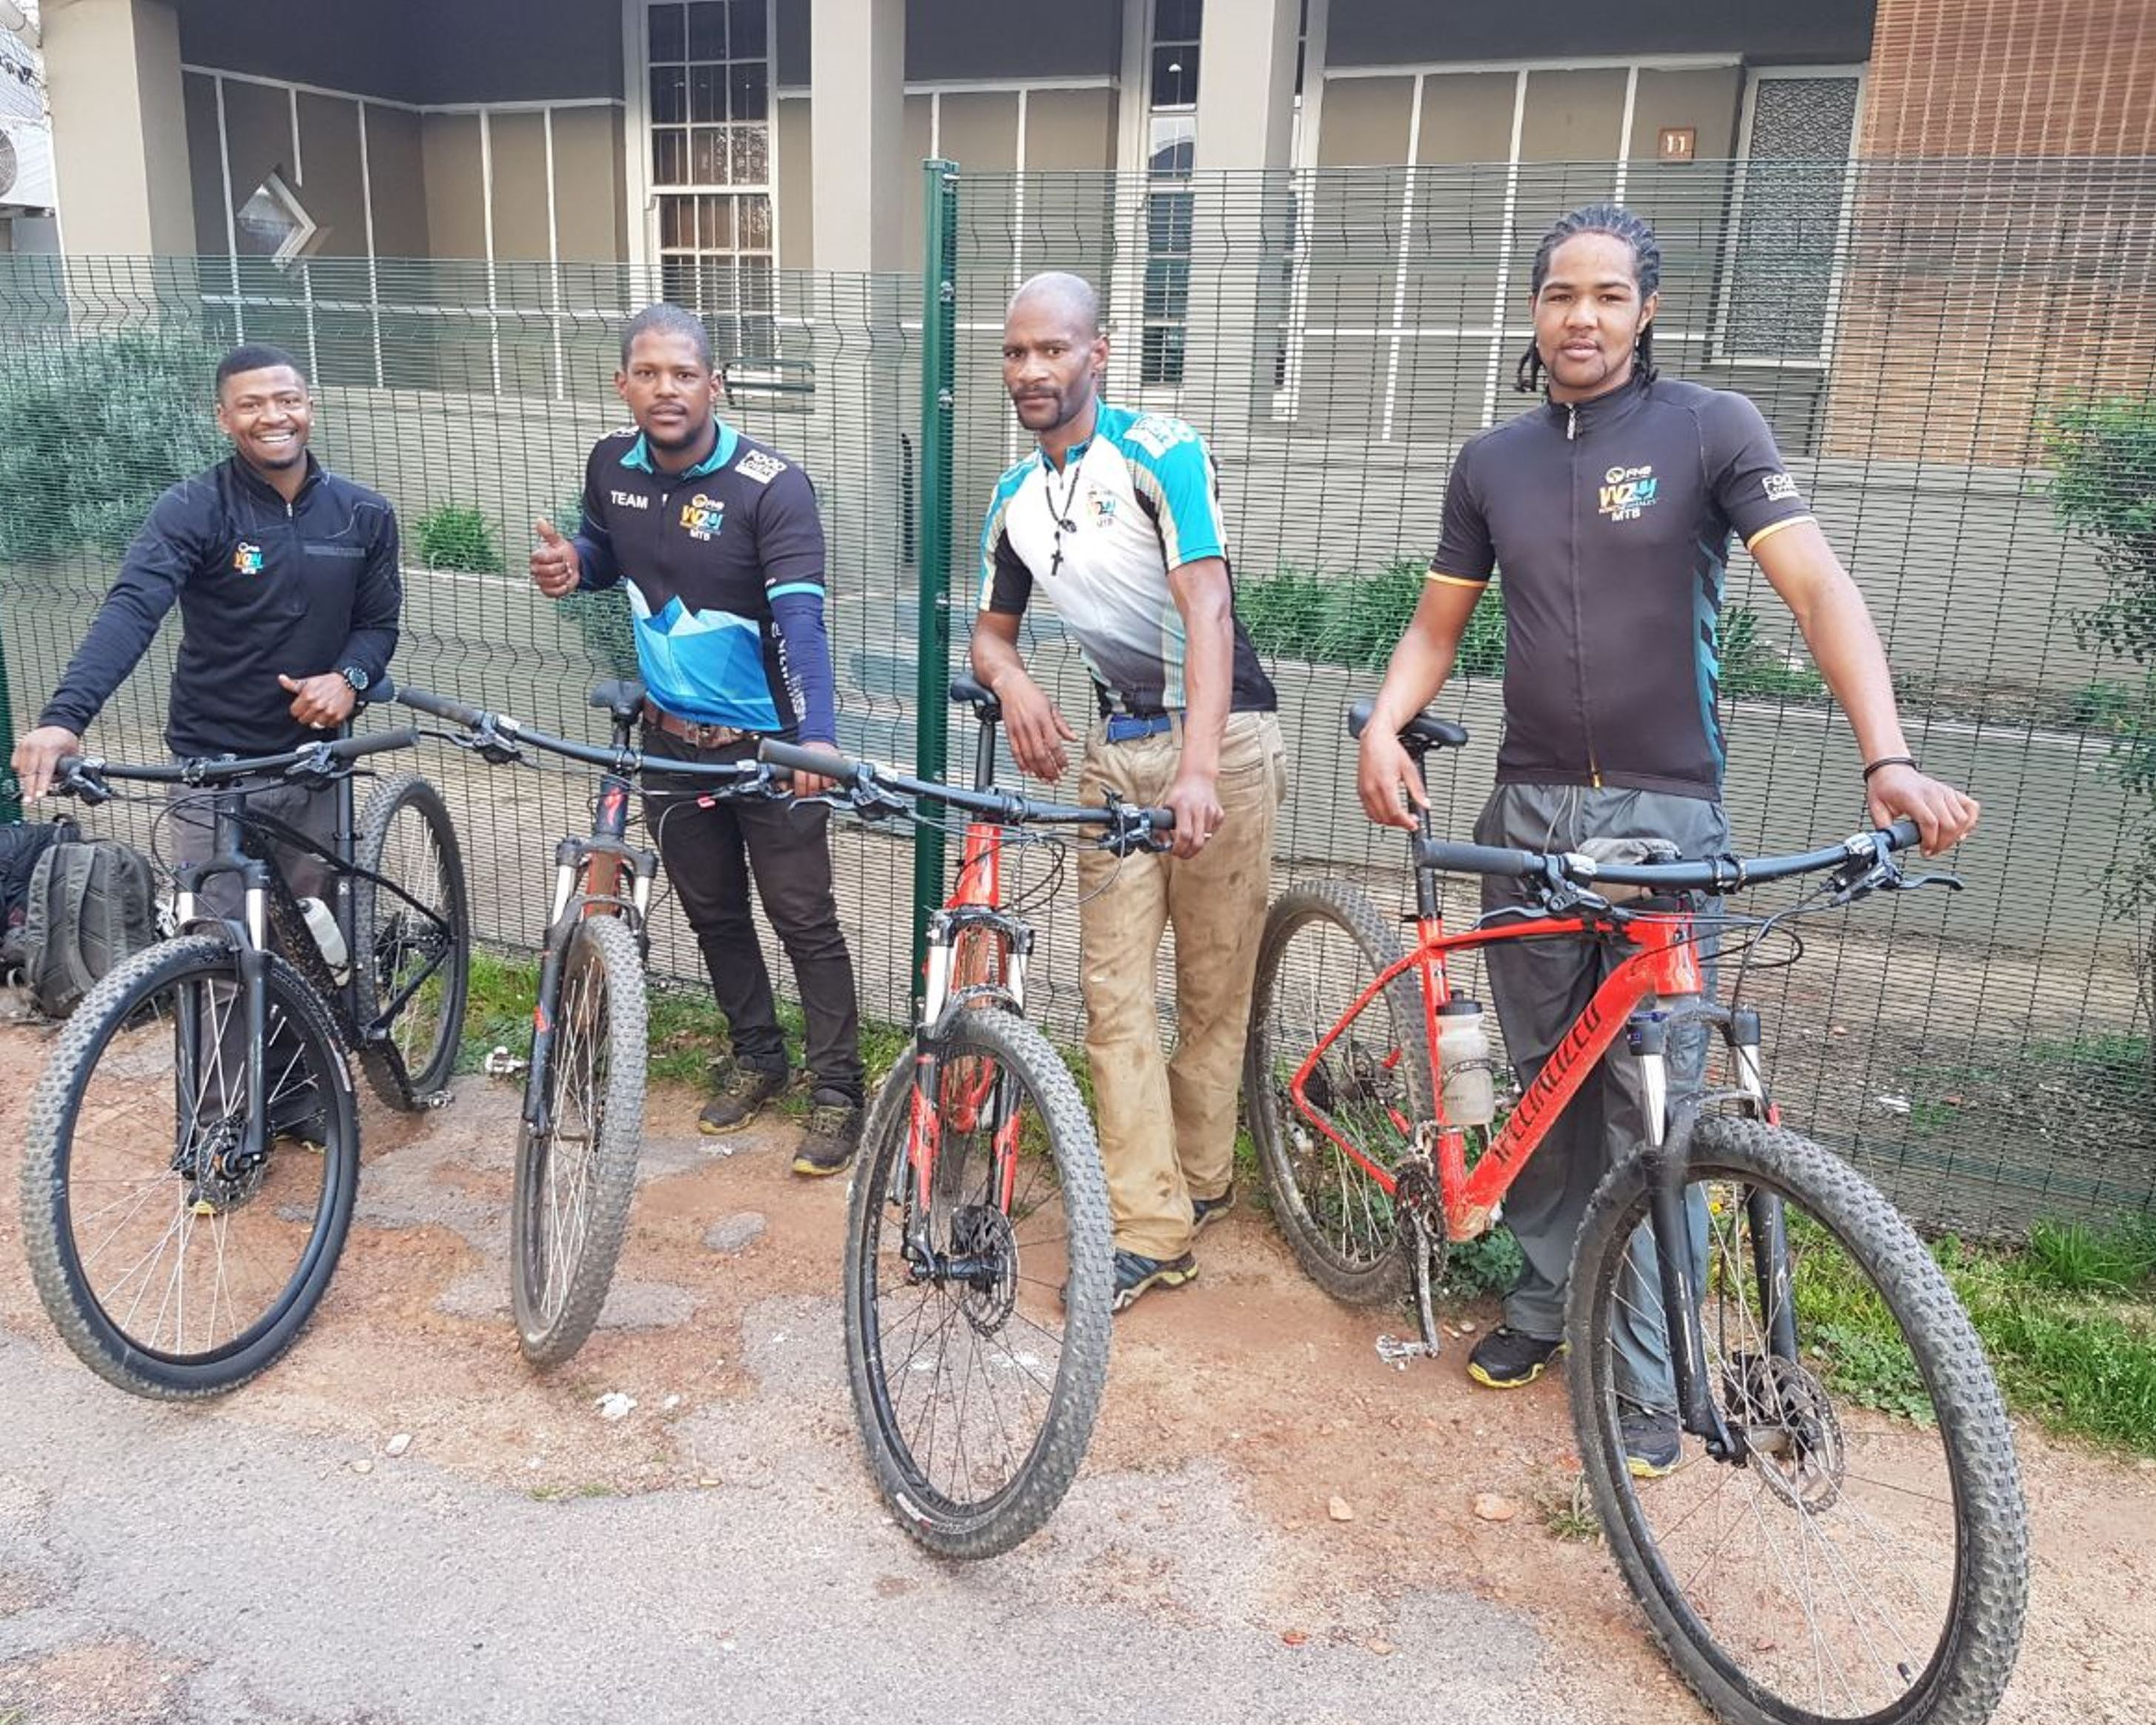 Cape Trails, the cherished route builders of the FNB Wines2Whales (W2W) Mountain Bike (MTB) Events, will be seen traveling to work in style on their 2018 Rockhopper Comp 29er mountain bikes compliments of the organizers of the FNB W2W MTB Events and Specialized South Africa.  Seen here (from left to right):  Cape Trails members Ashwell Swartz, Brendon Booysen, Denzel Scheepers and Jason Adams.